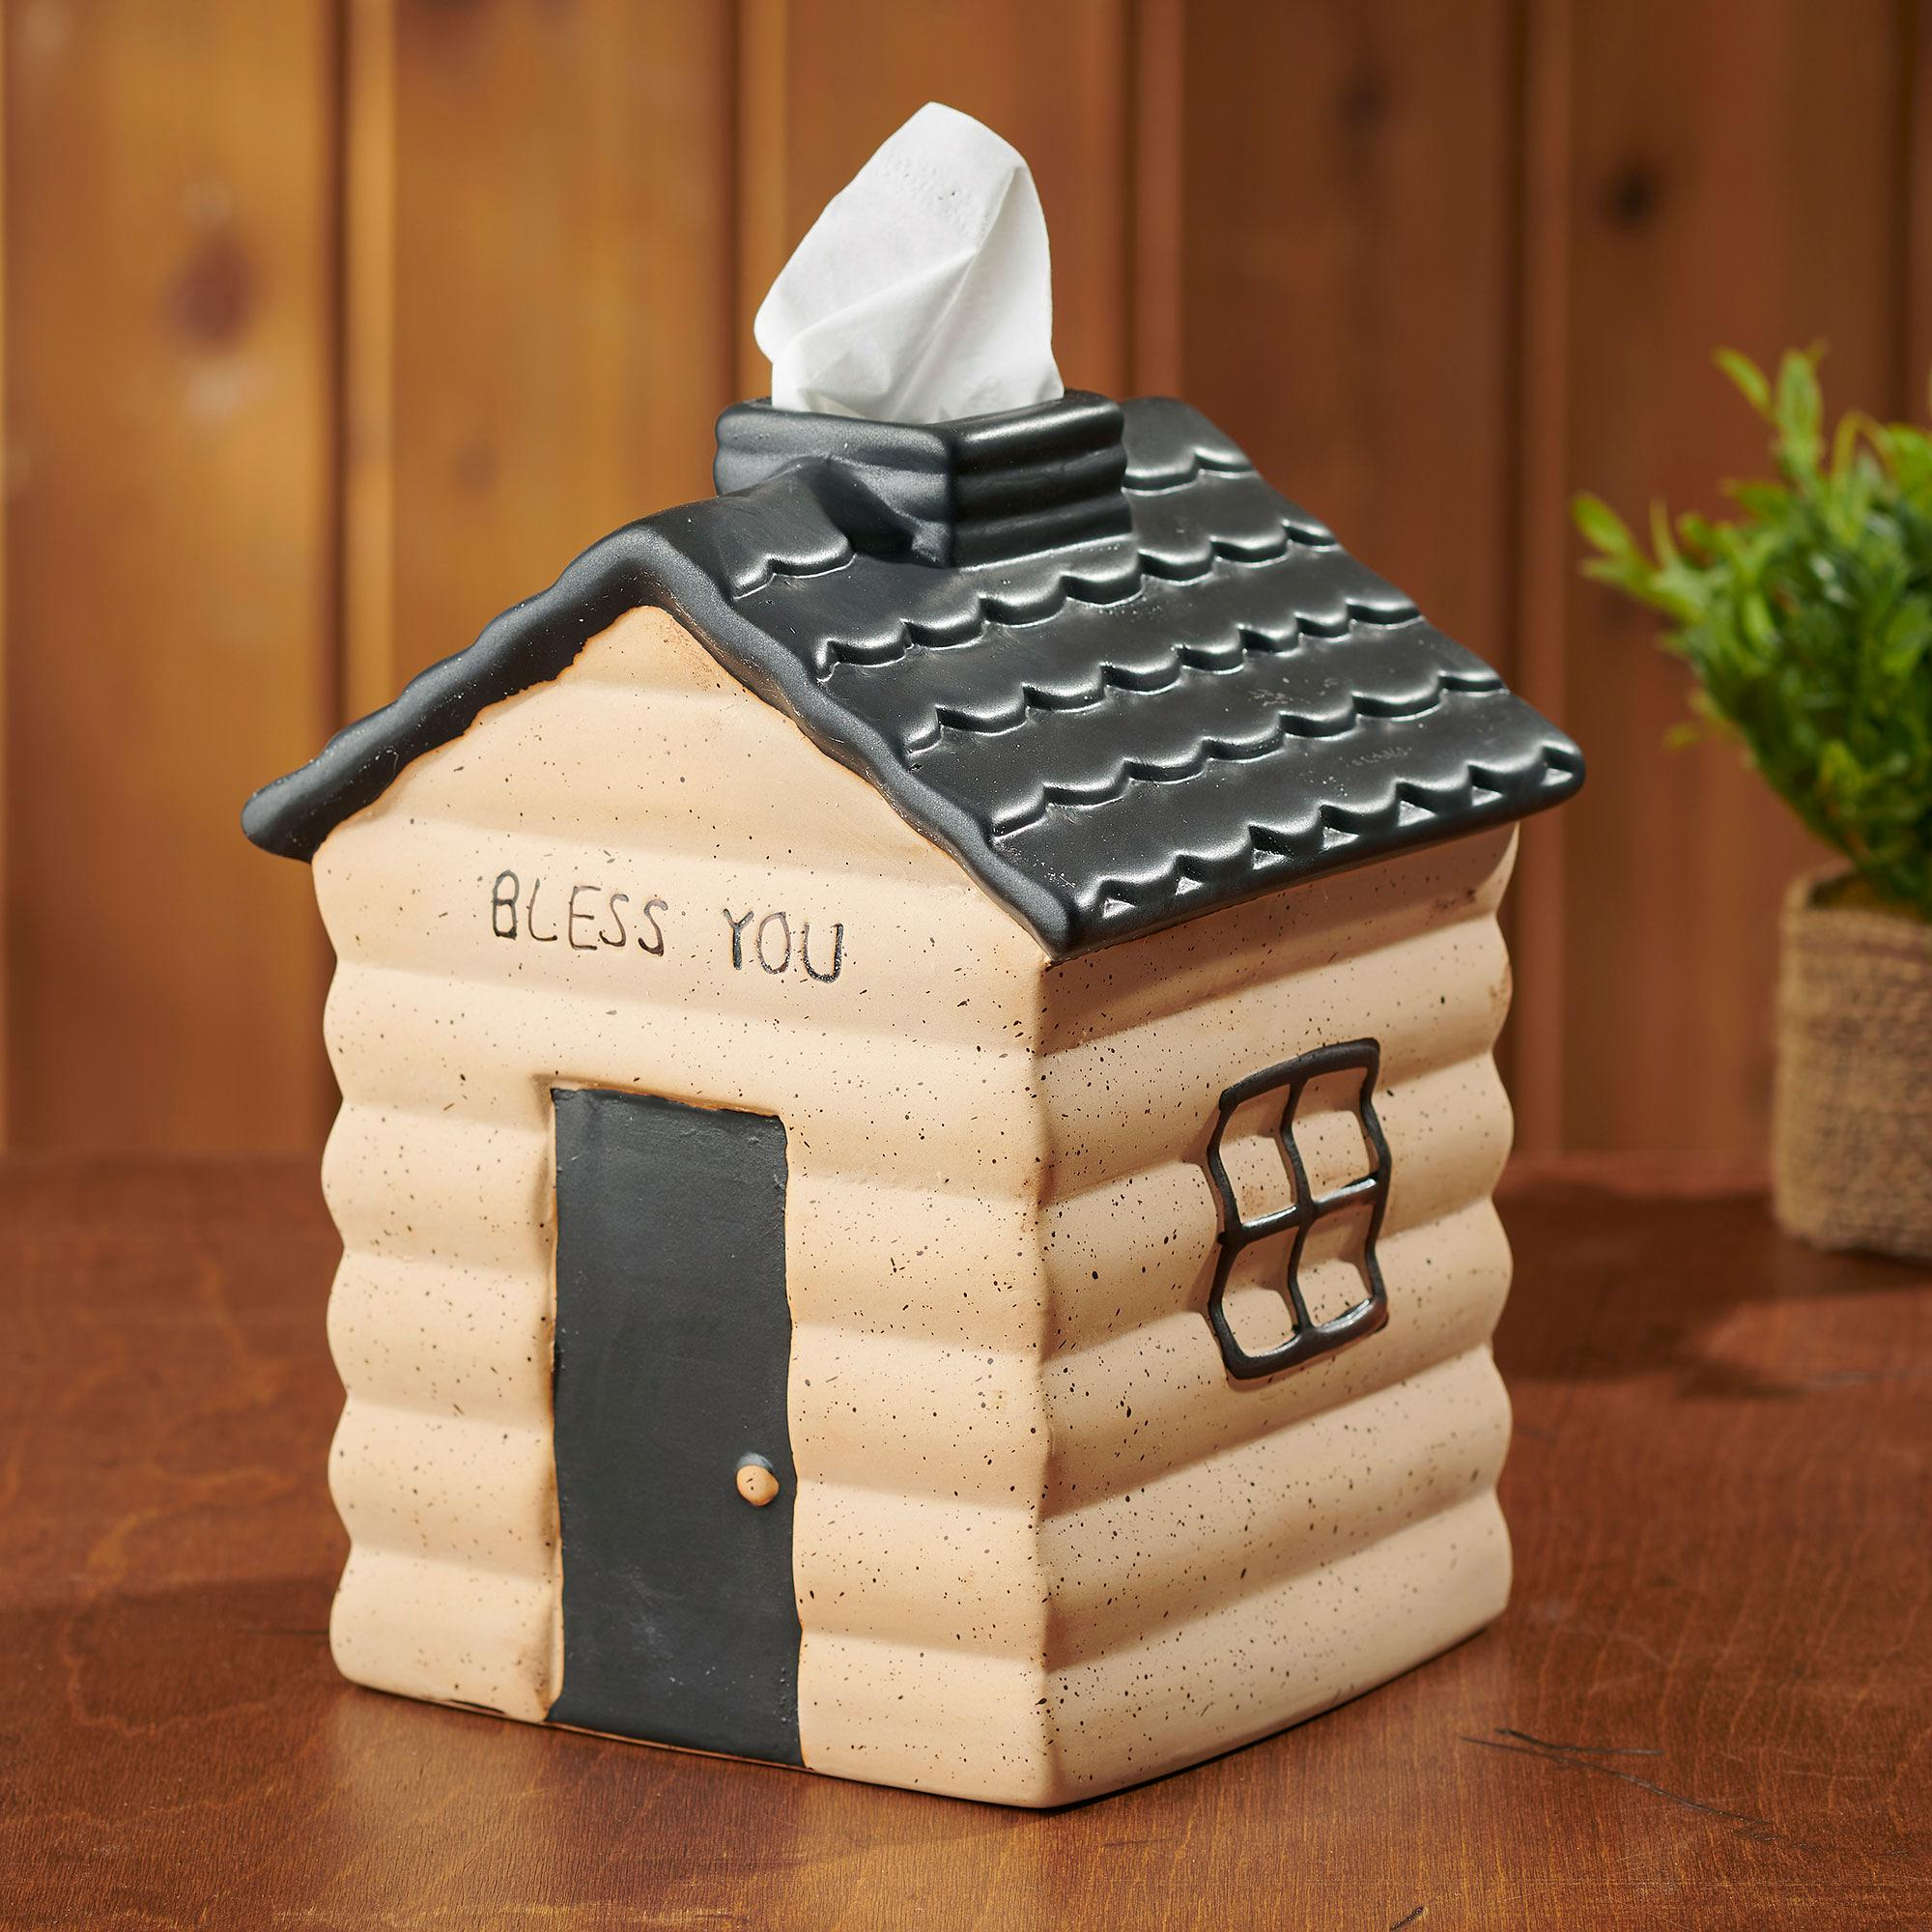 Bless You Log Cabin Tissue Box Cover